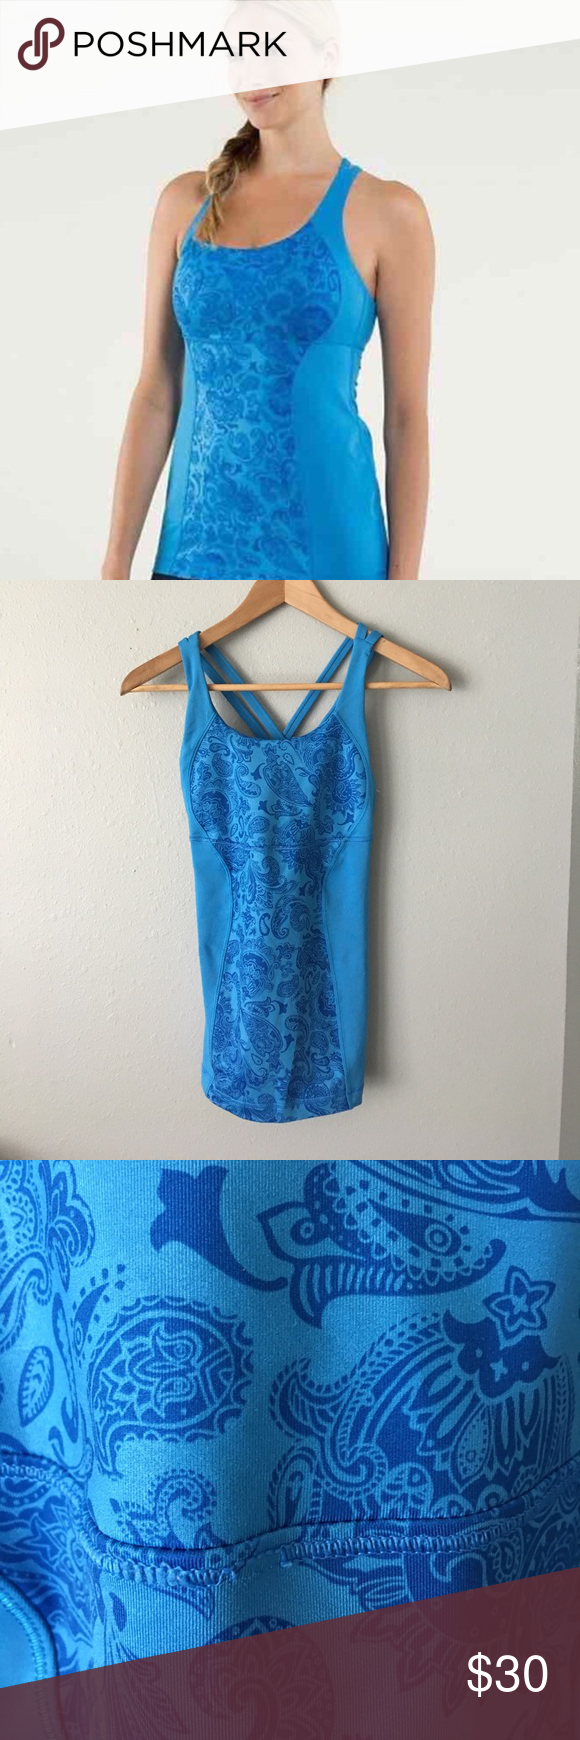 Lululemon Energy Tank Preloved condition with no major flaws. Please see all photos for accurate description of condition. Happy to answer any questions - please ask before purchasing. lululemon athletica Tops